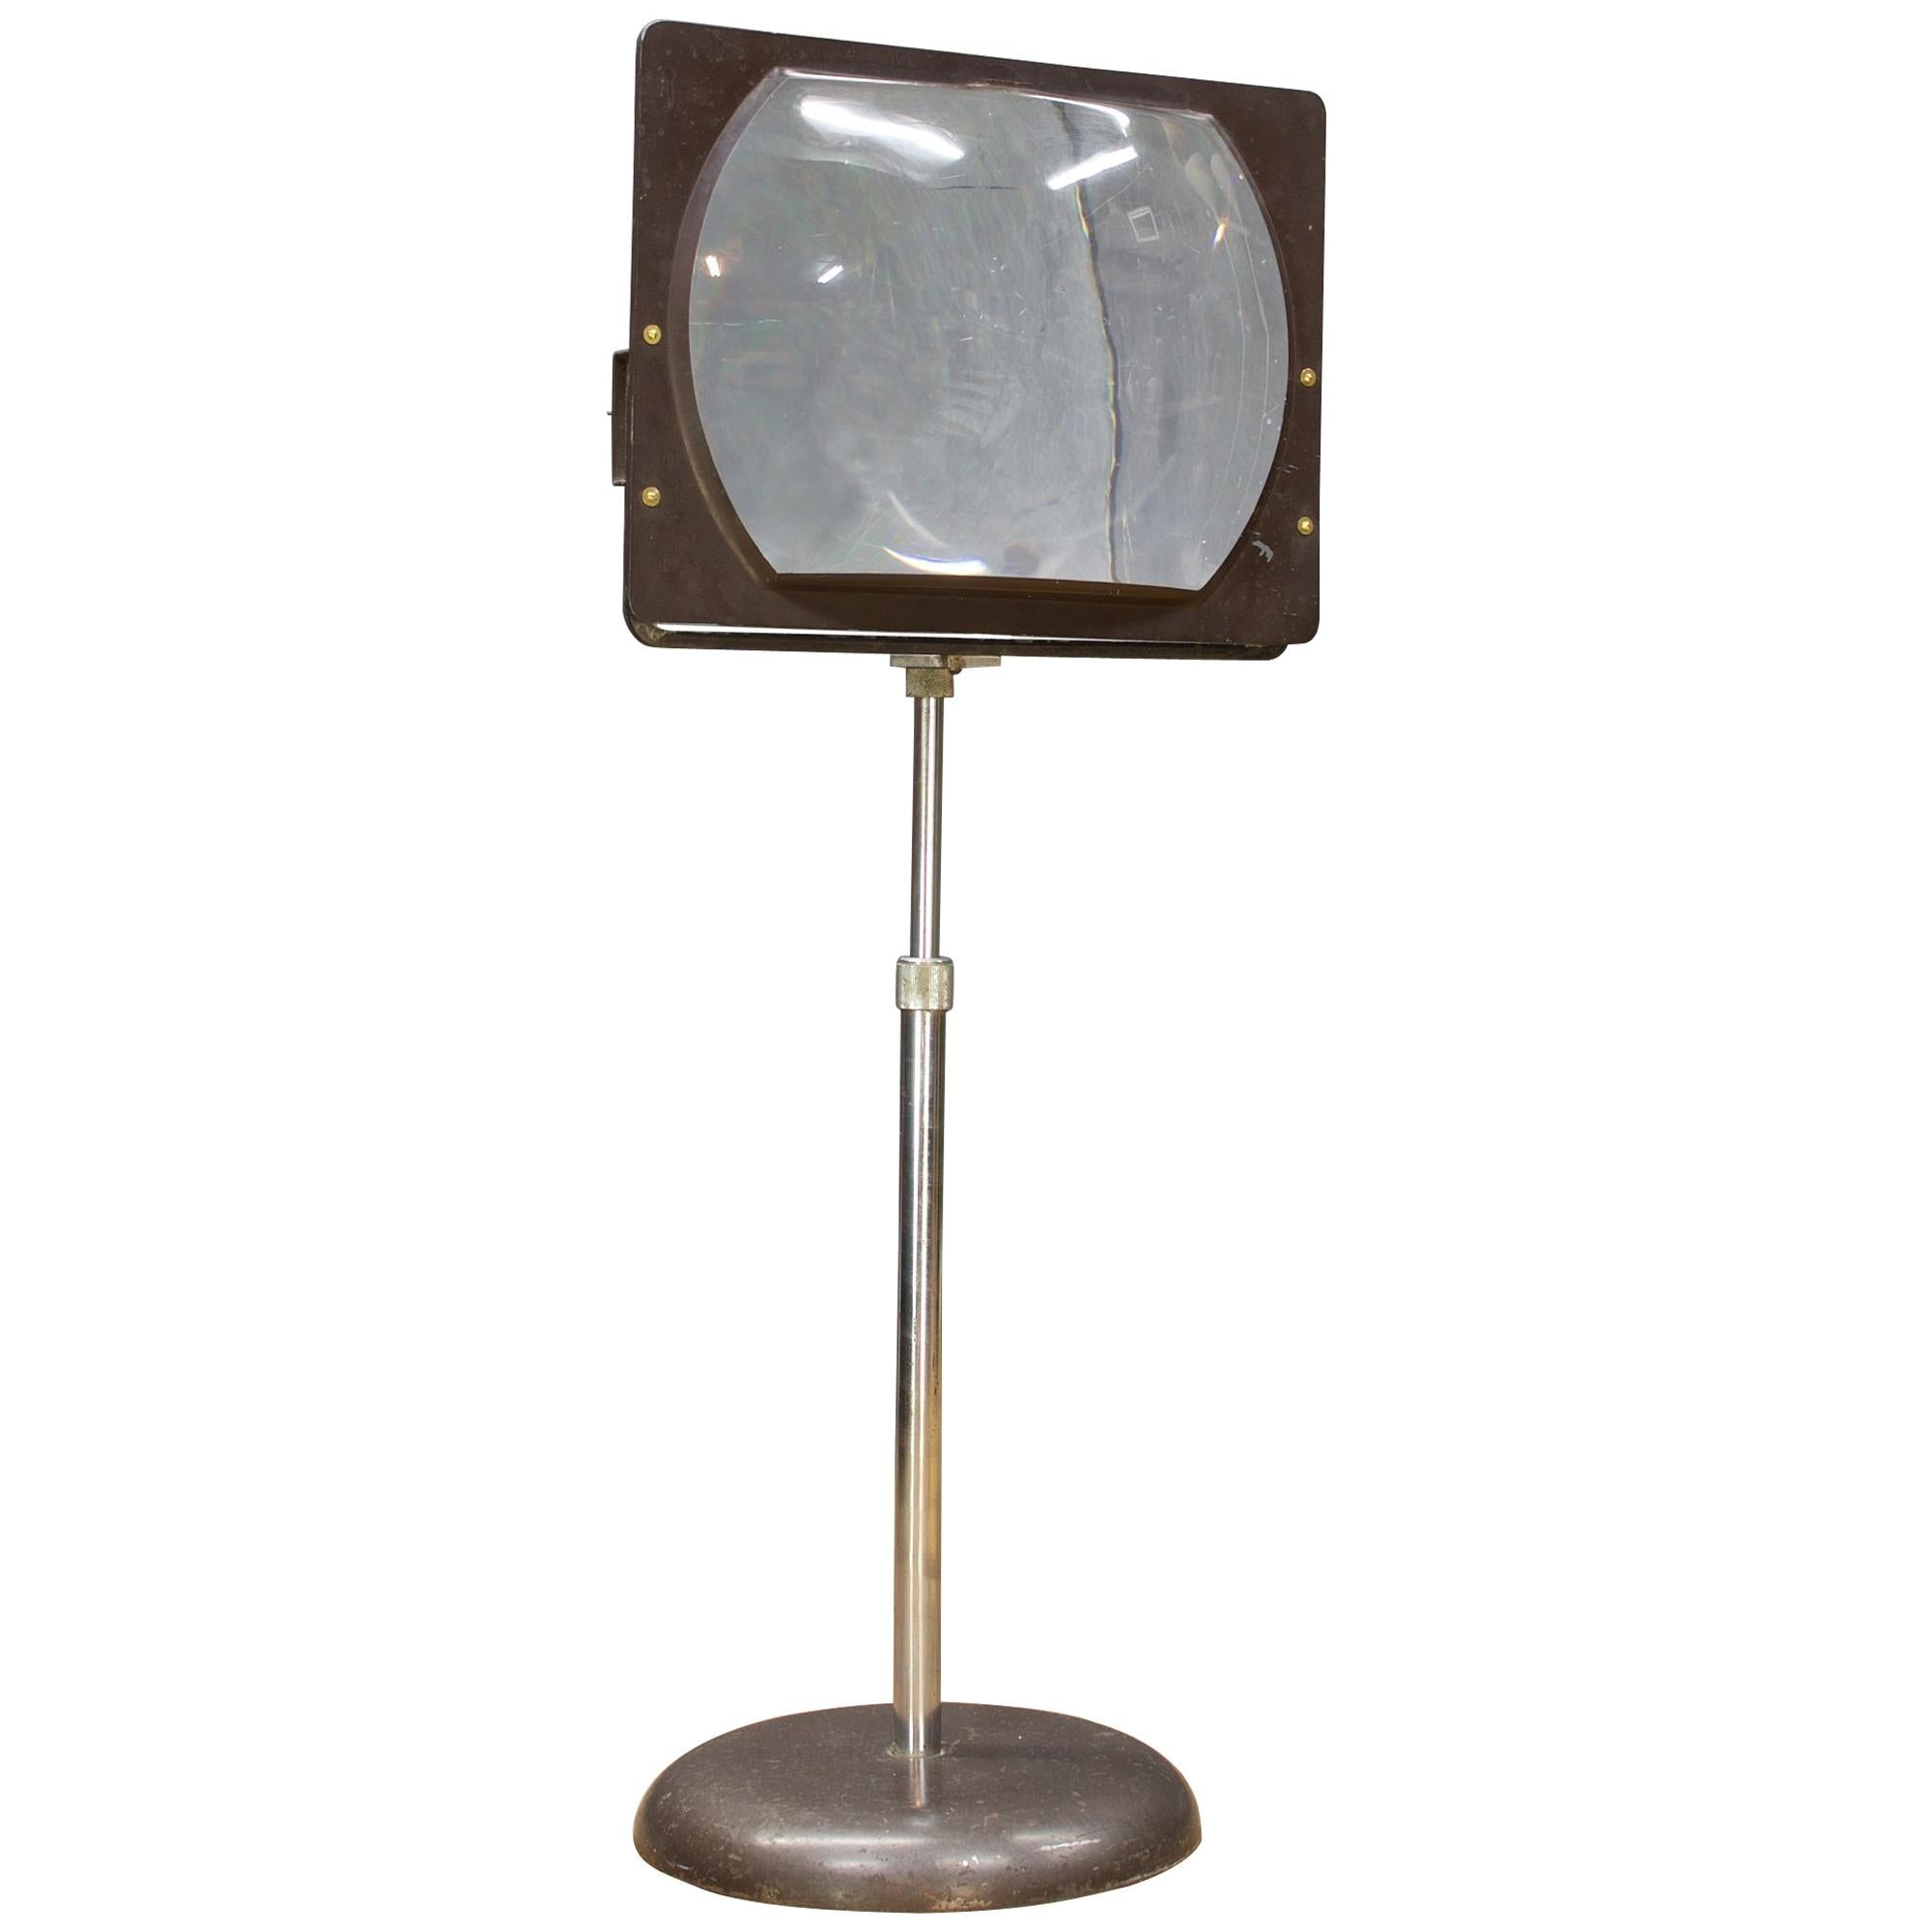 Hi-Def Television Magnifier Magnifying Glass Lens Stand Looking Retro Techno Mod